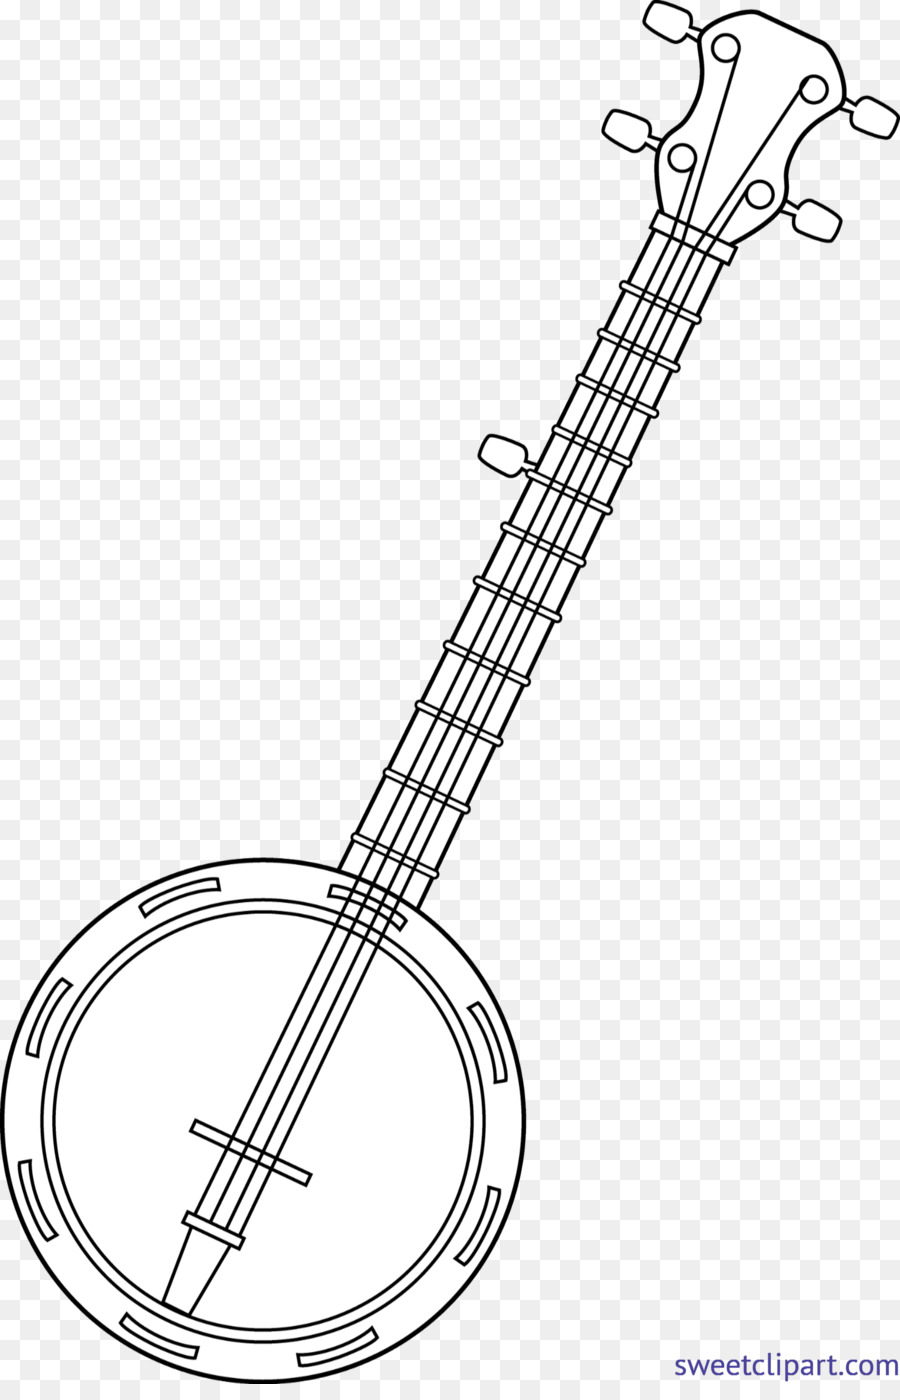 banjo colouring pages clip art coloring book string instruments musical instruments